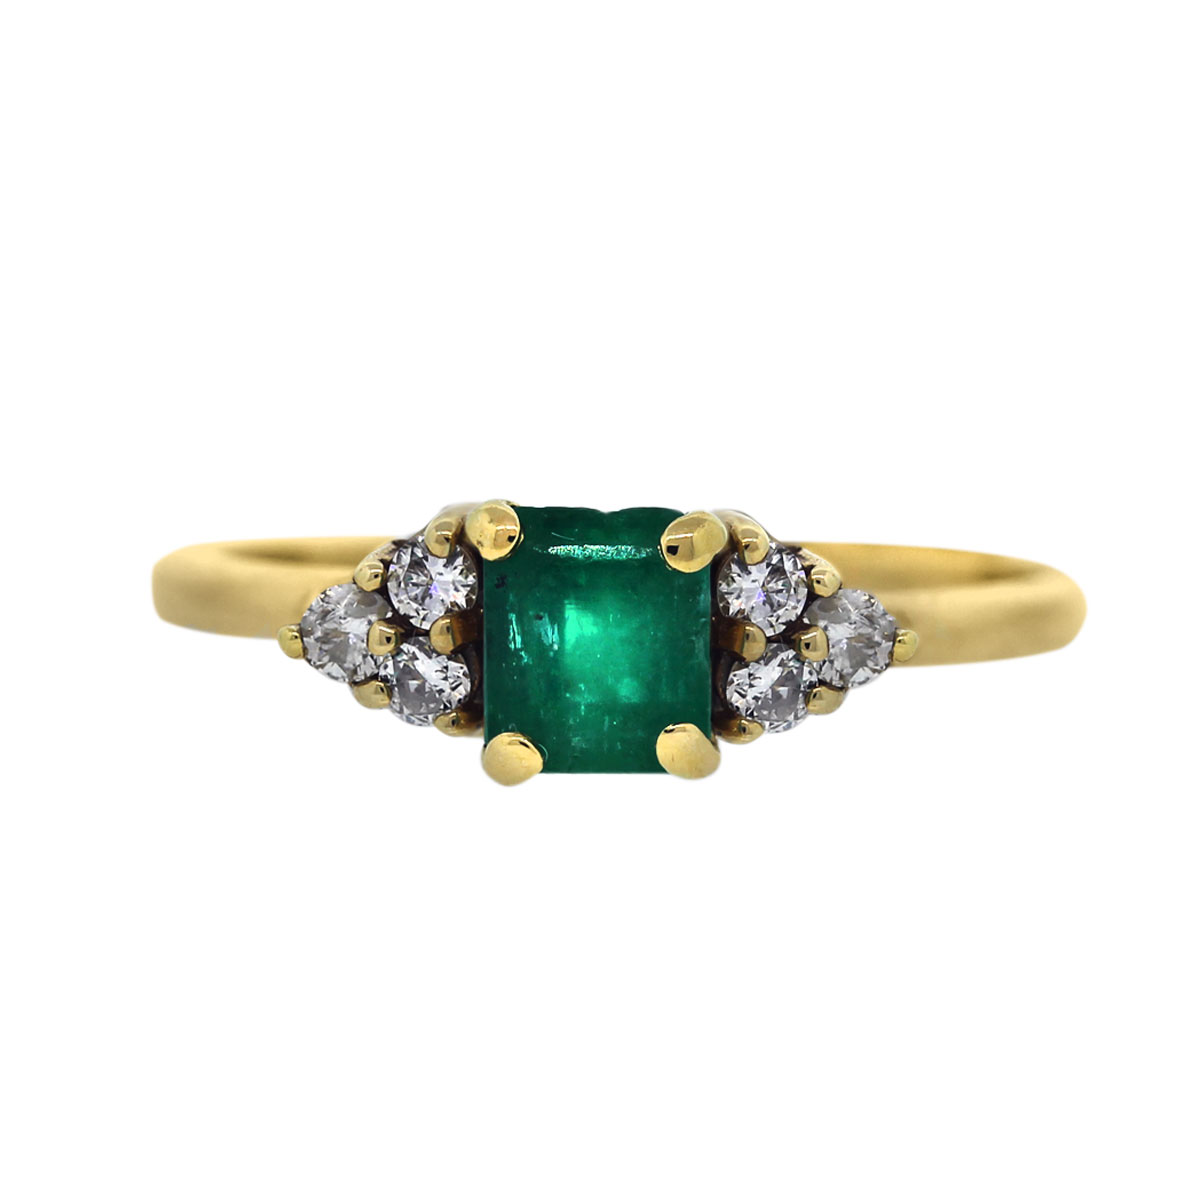 14k Yellow Gold Diamond and Emerald Cocktail Ring